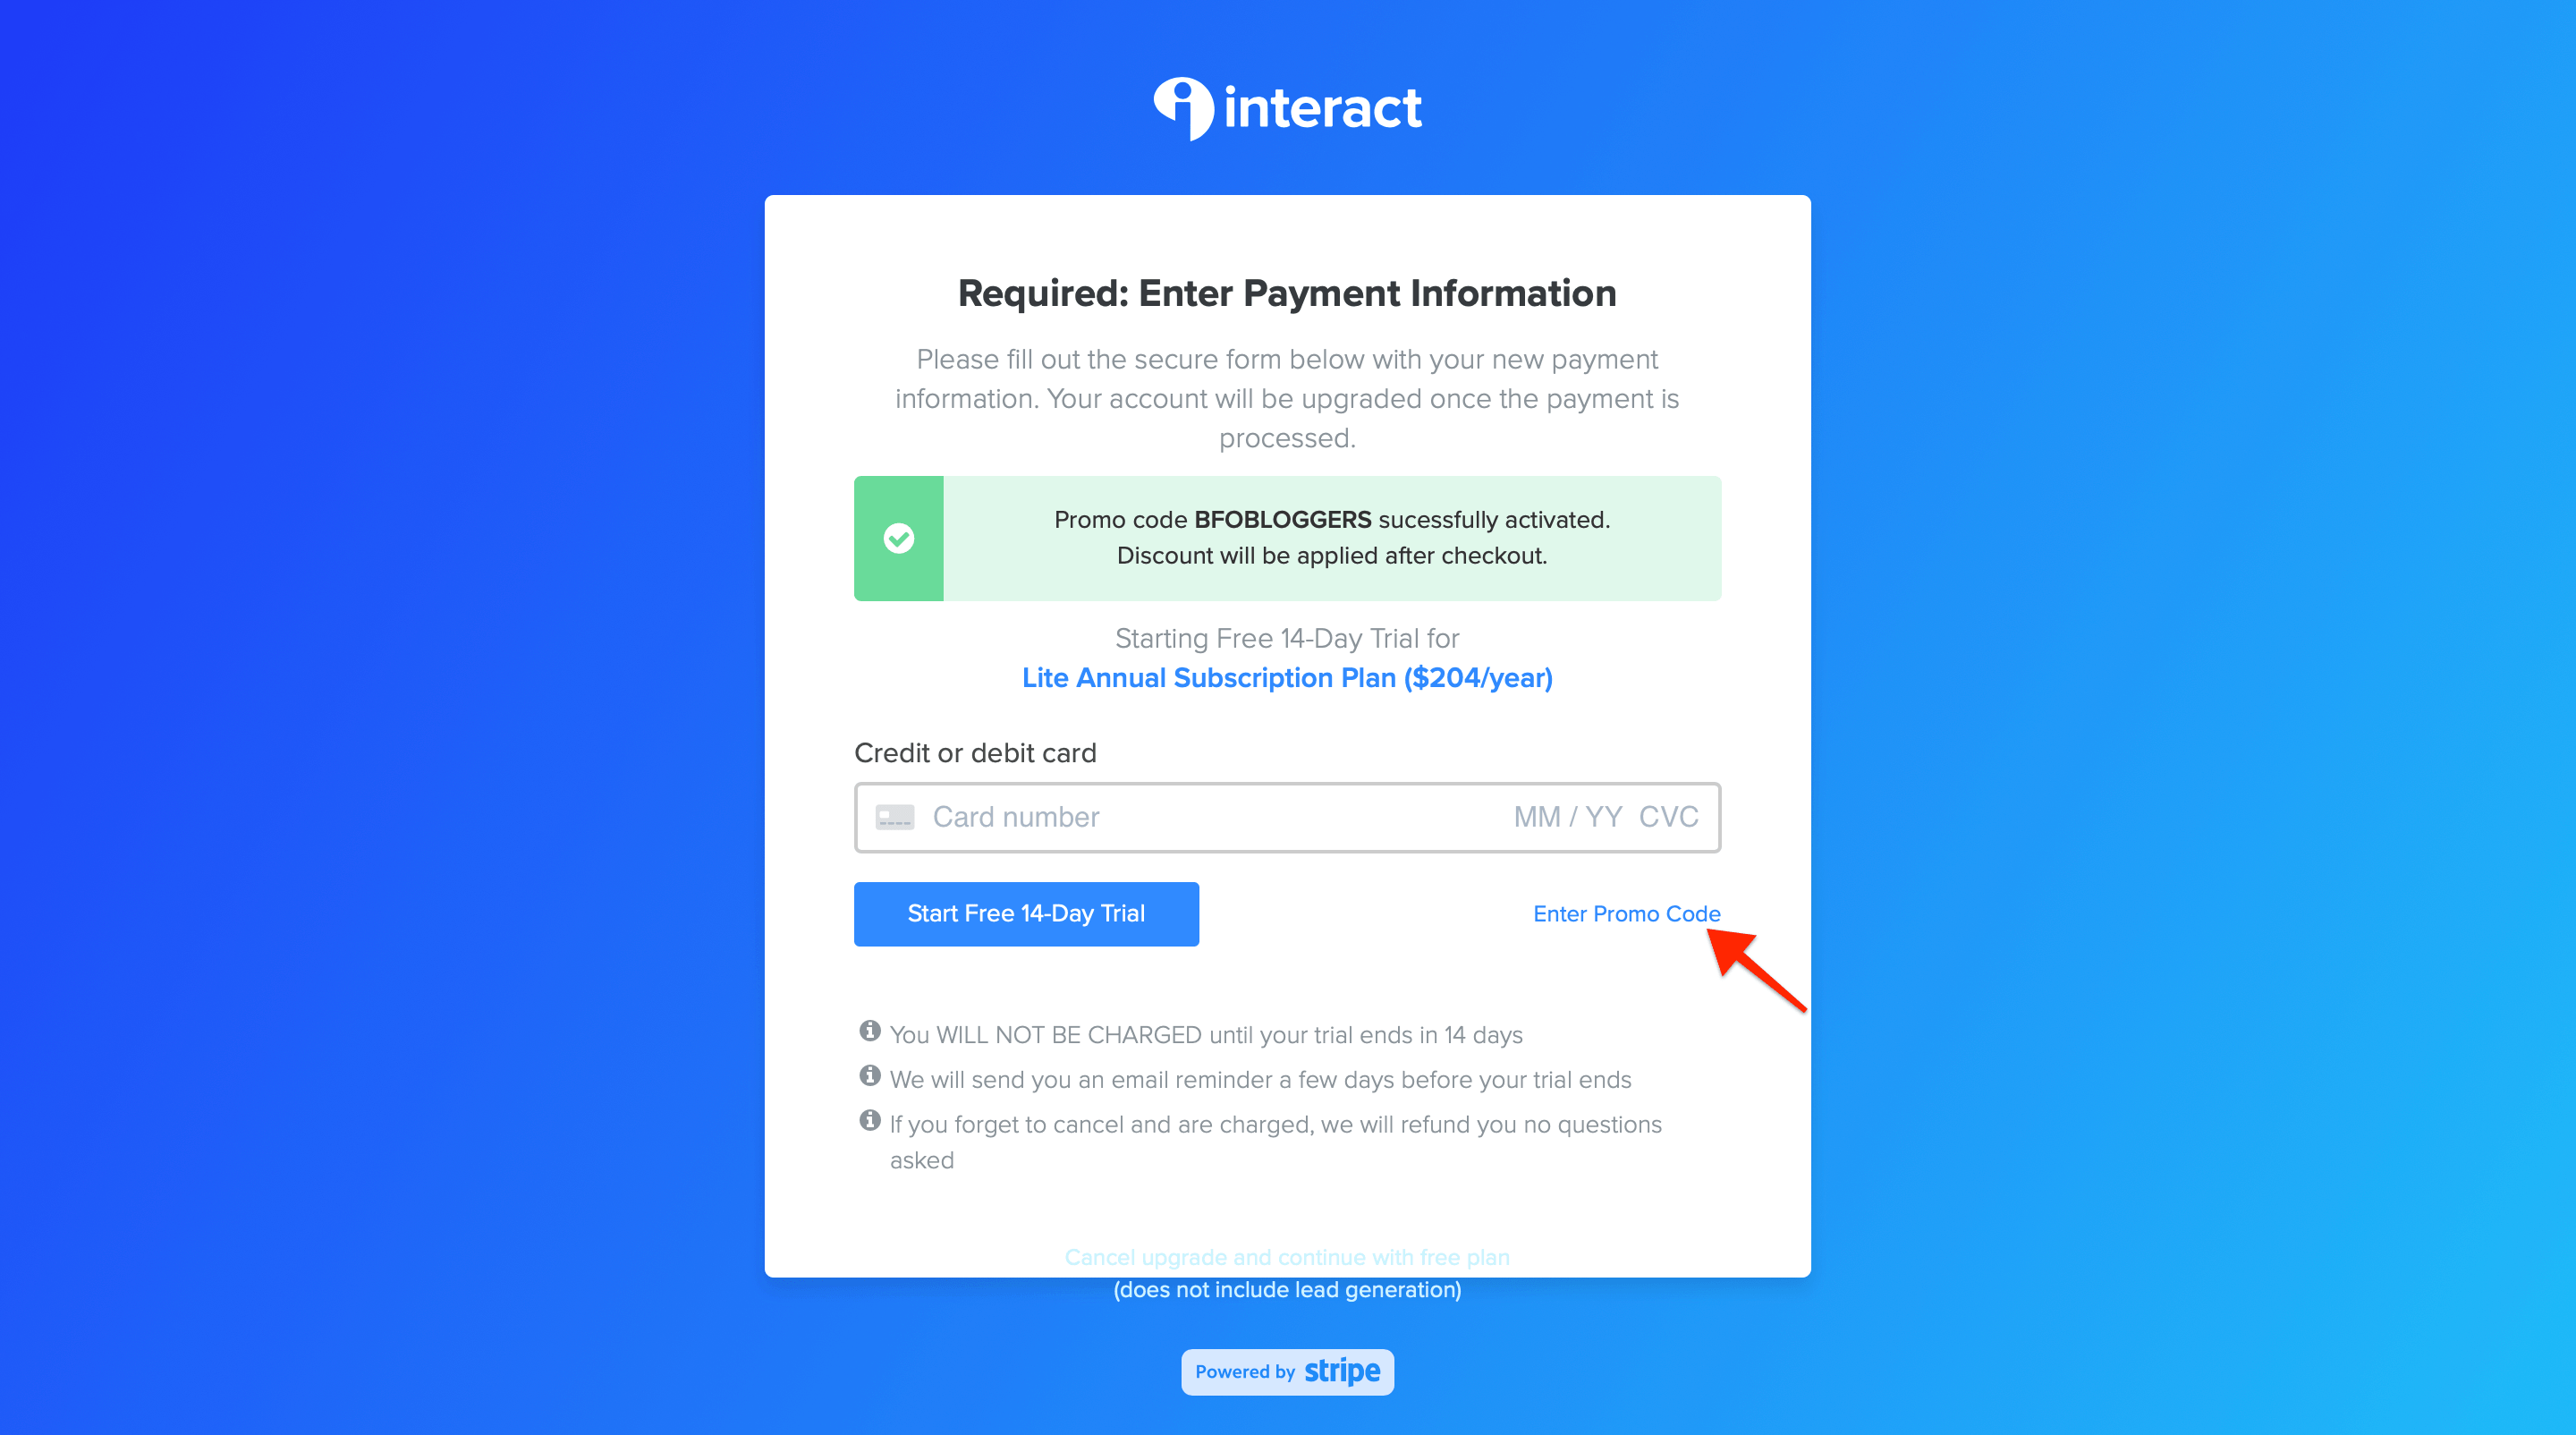 enter-coupon-code-in-interact-billing-information-page